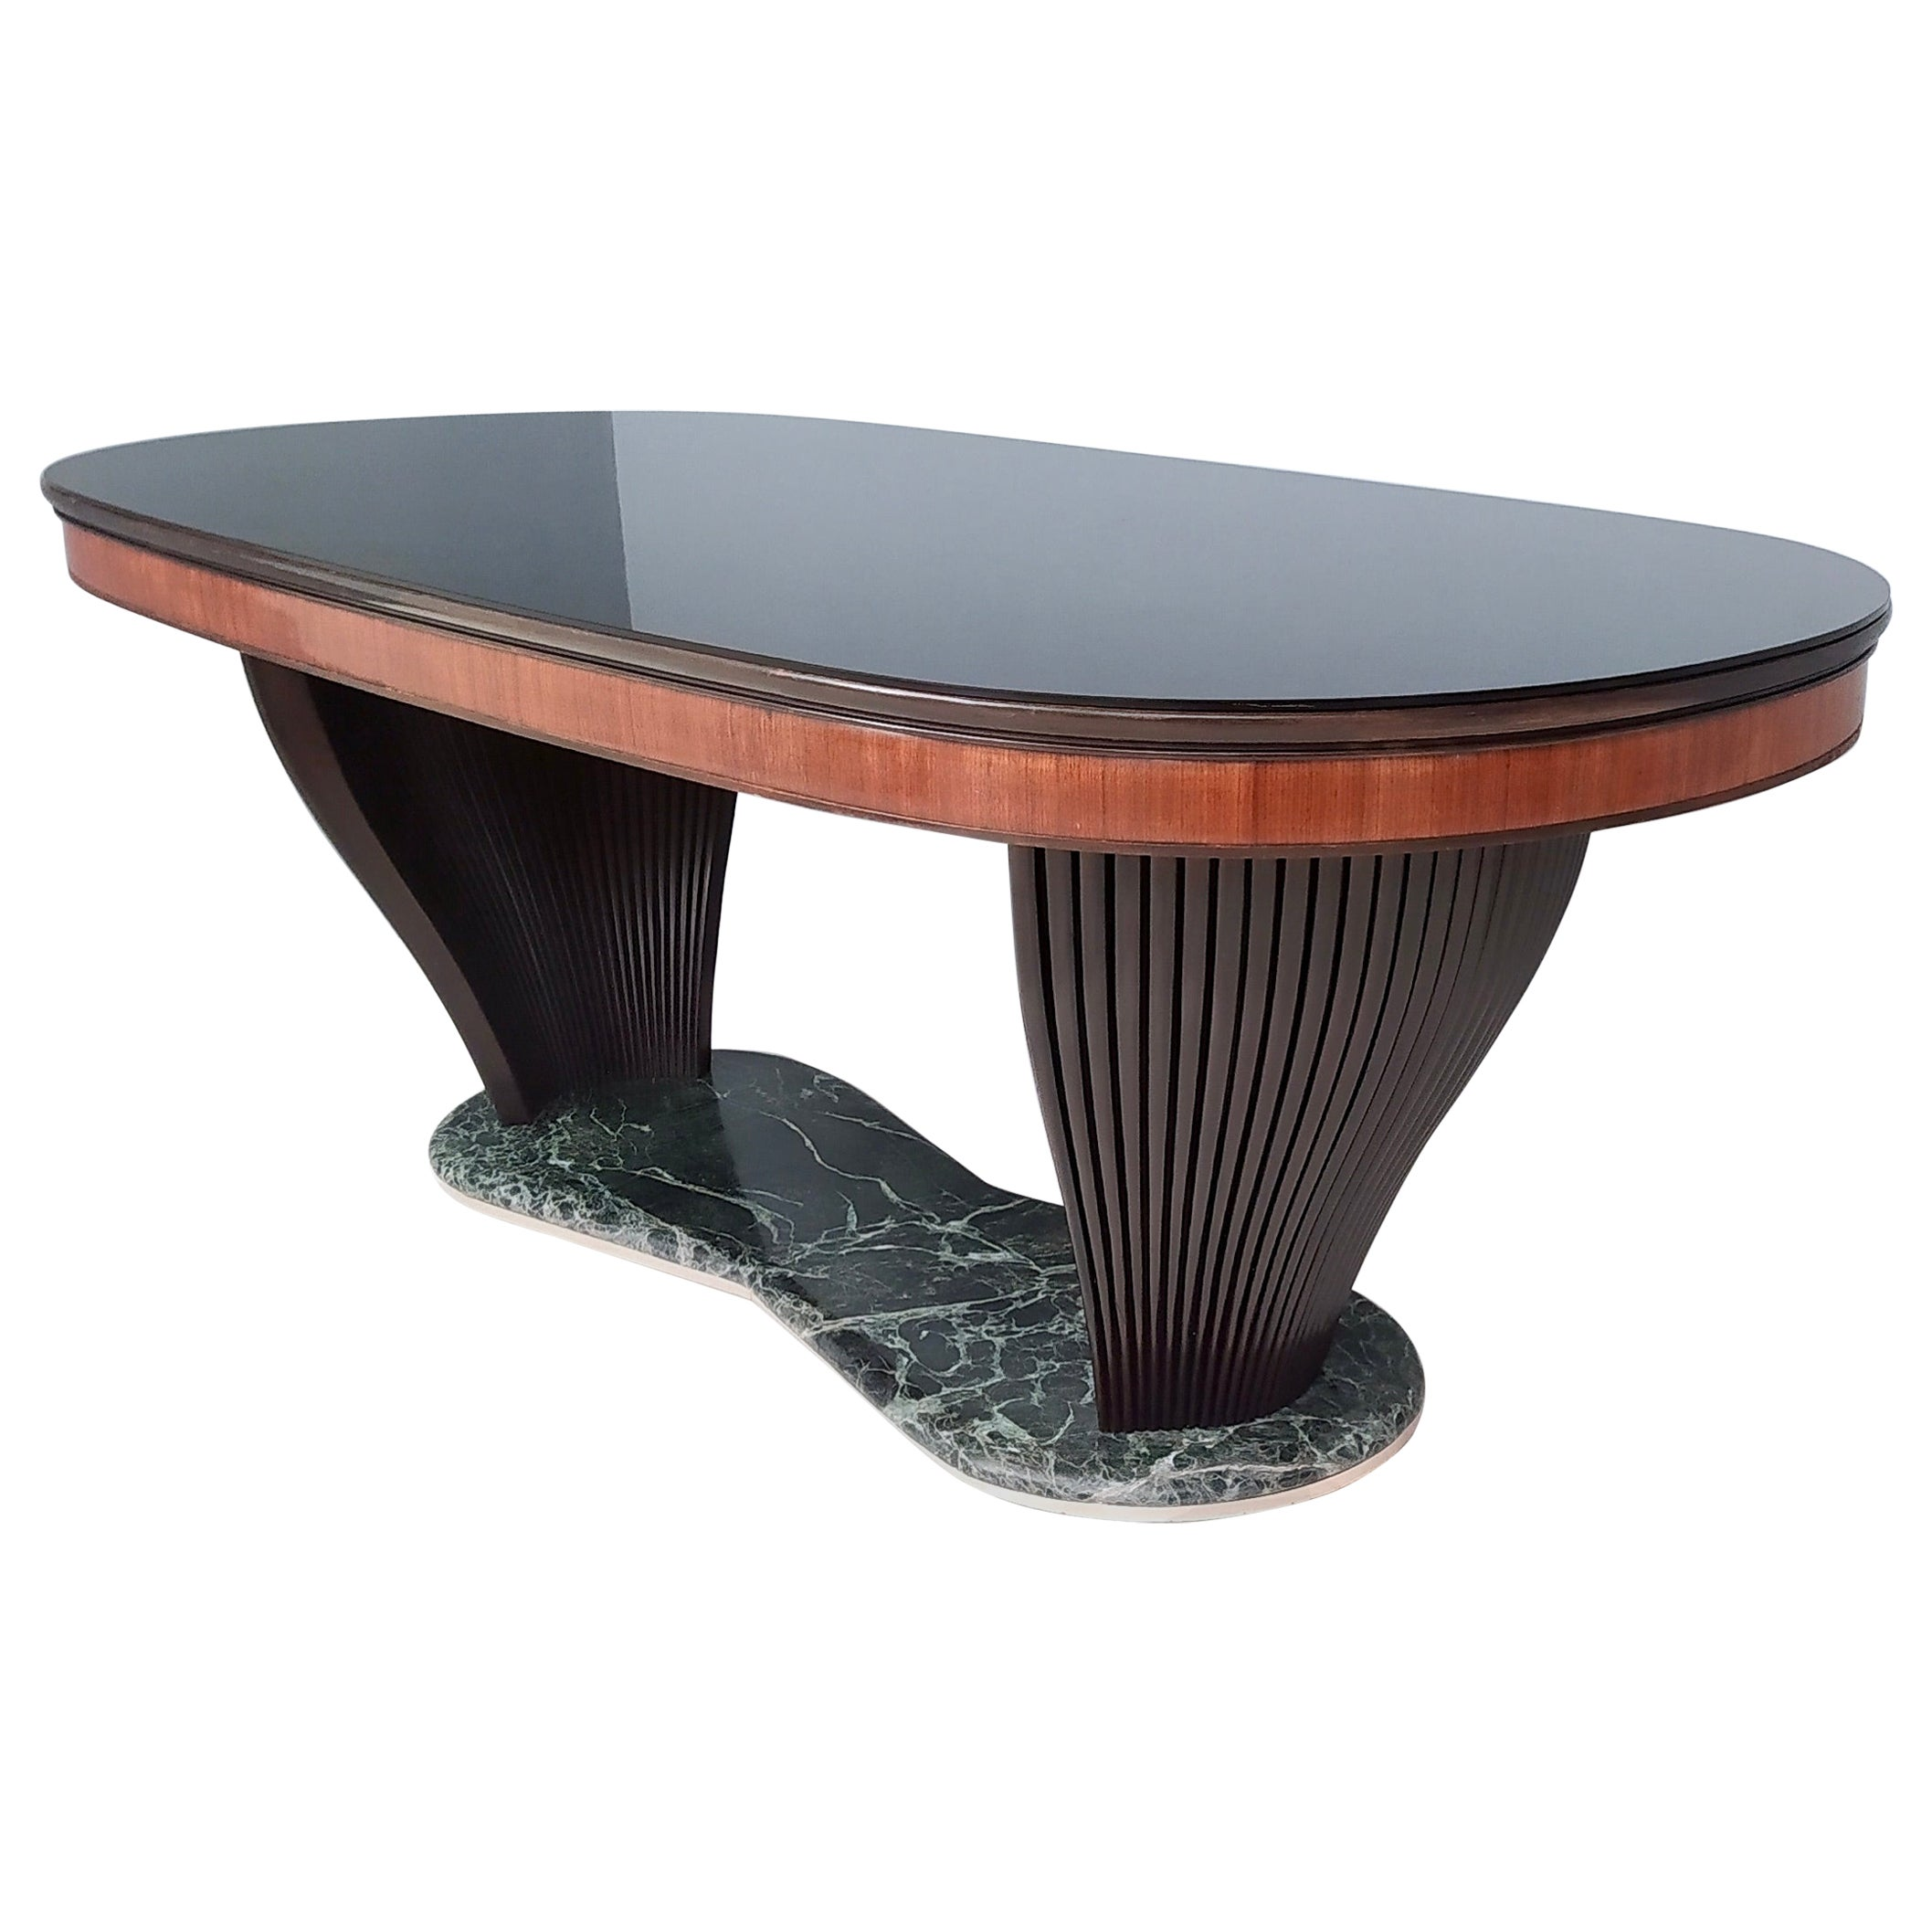 Vintage Dining Table by Vittorio Dassi with Opaline Glass Top and Marble Base